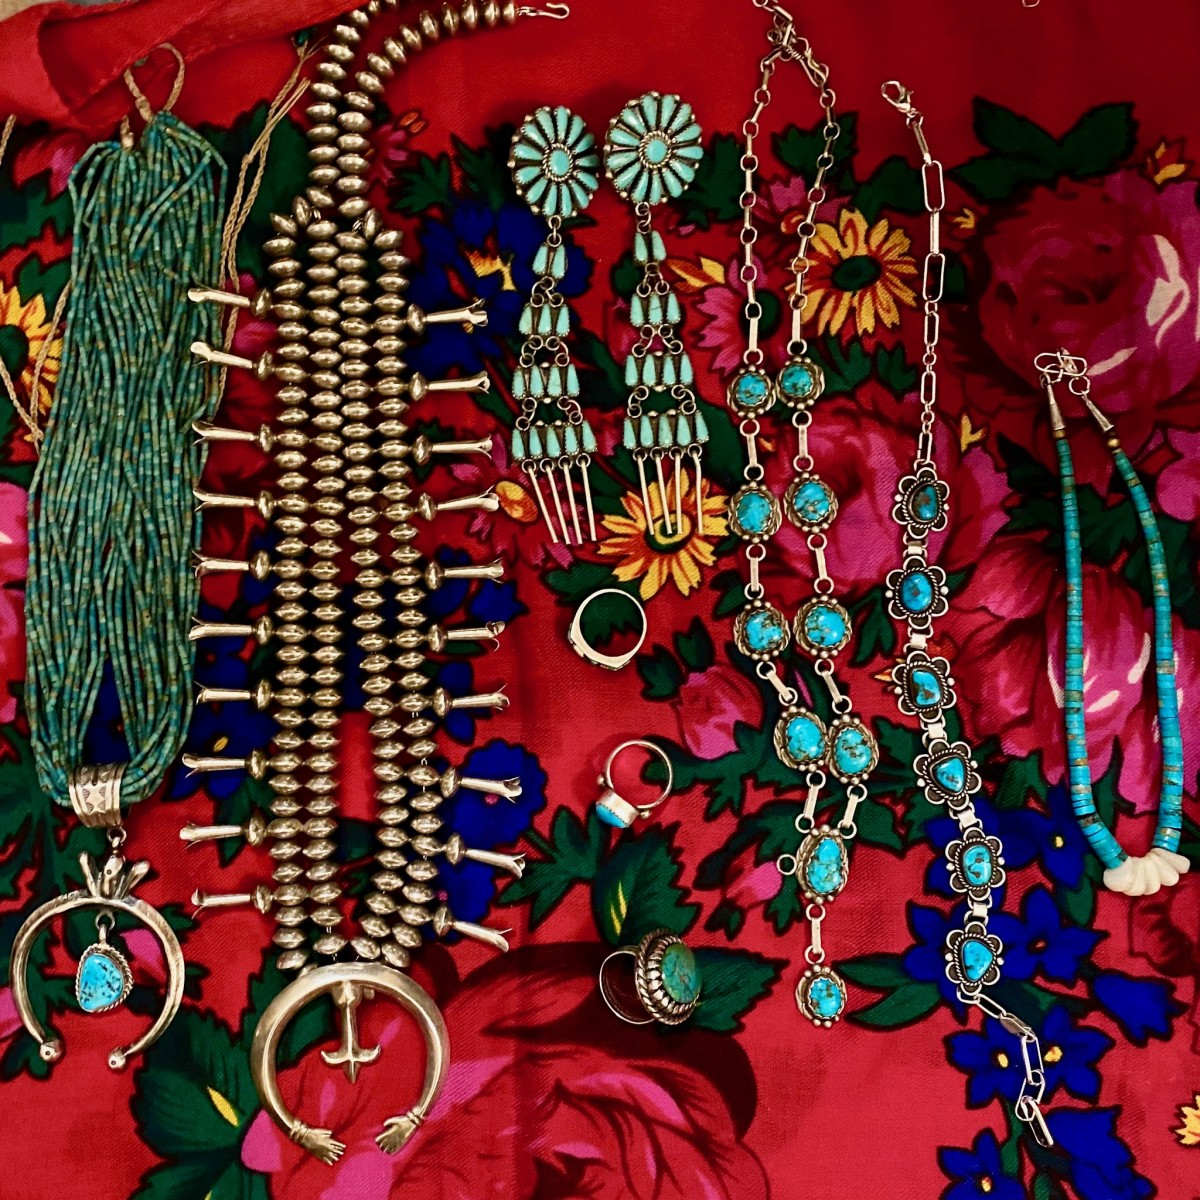 Former Miss Navajo Nation Jocelyn Billy-Upshaw's collection of Diné turquoise jewelry made by artists in the southwest. (Photo by Emily Sullivan)